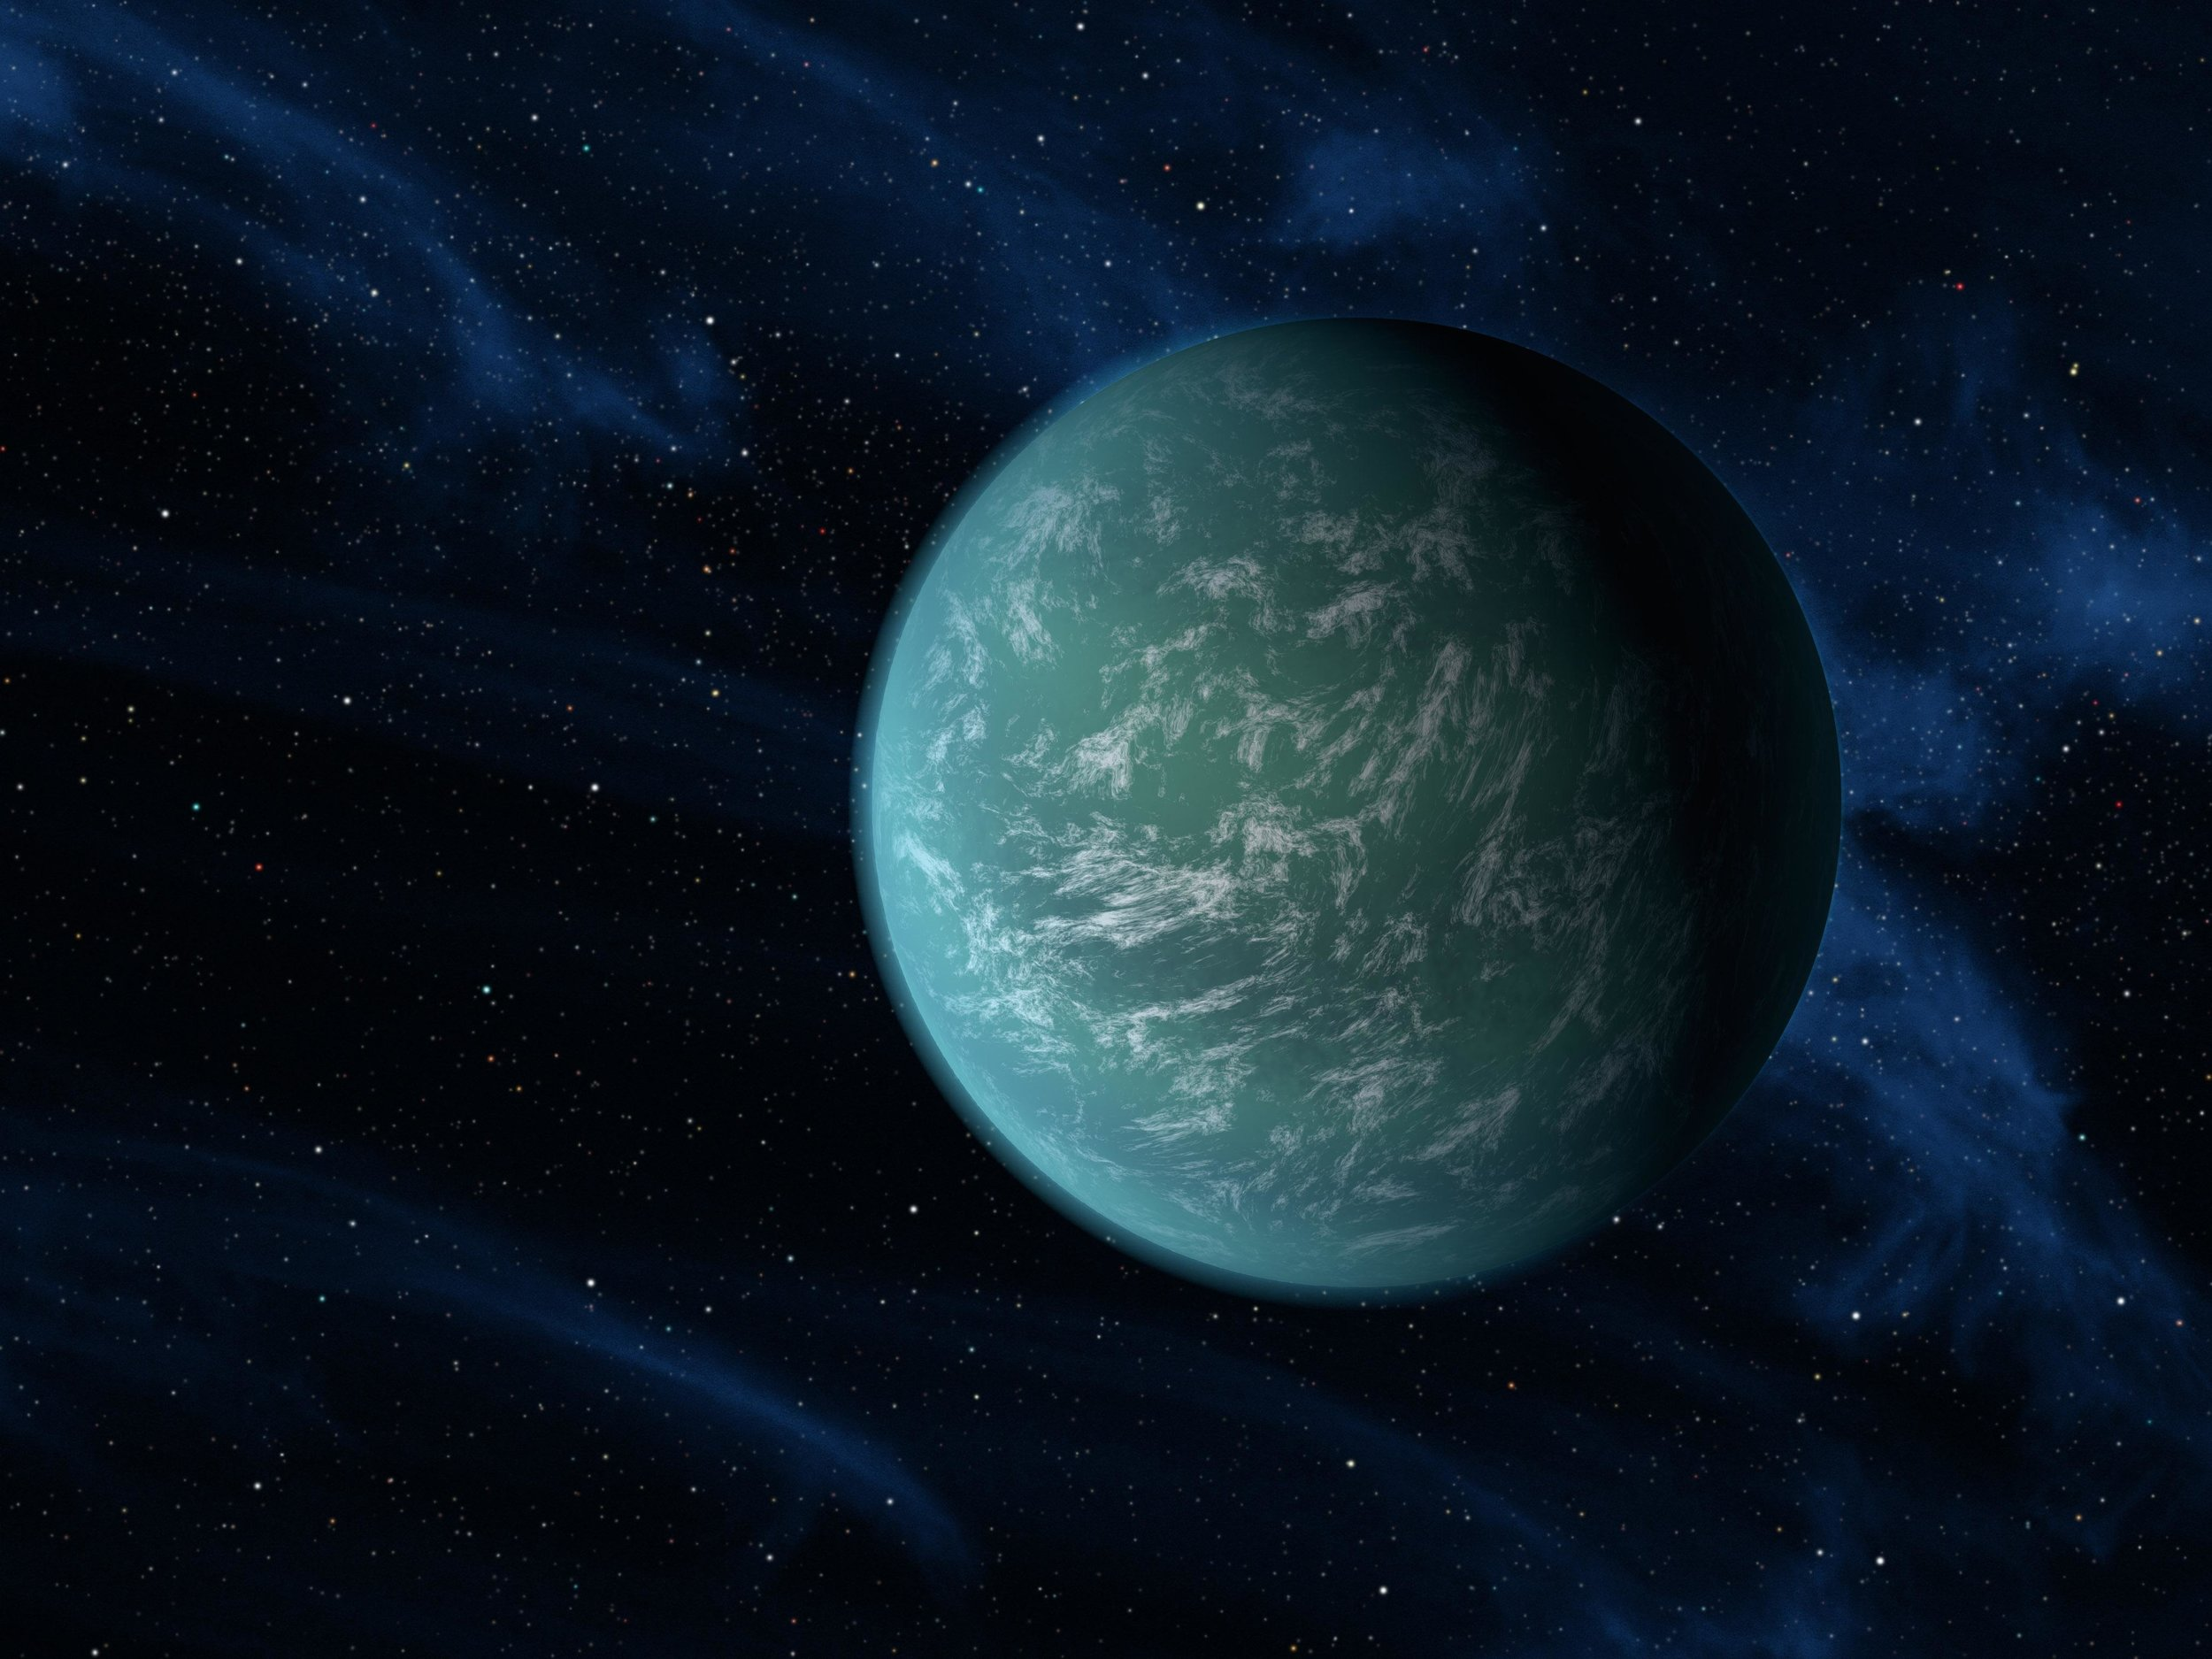 Kepler-22b, an exoplanet with an Earth-like radius that was discovery within the habitable zone of its host star. - Image Credit: NASA